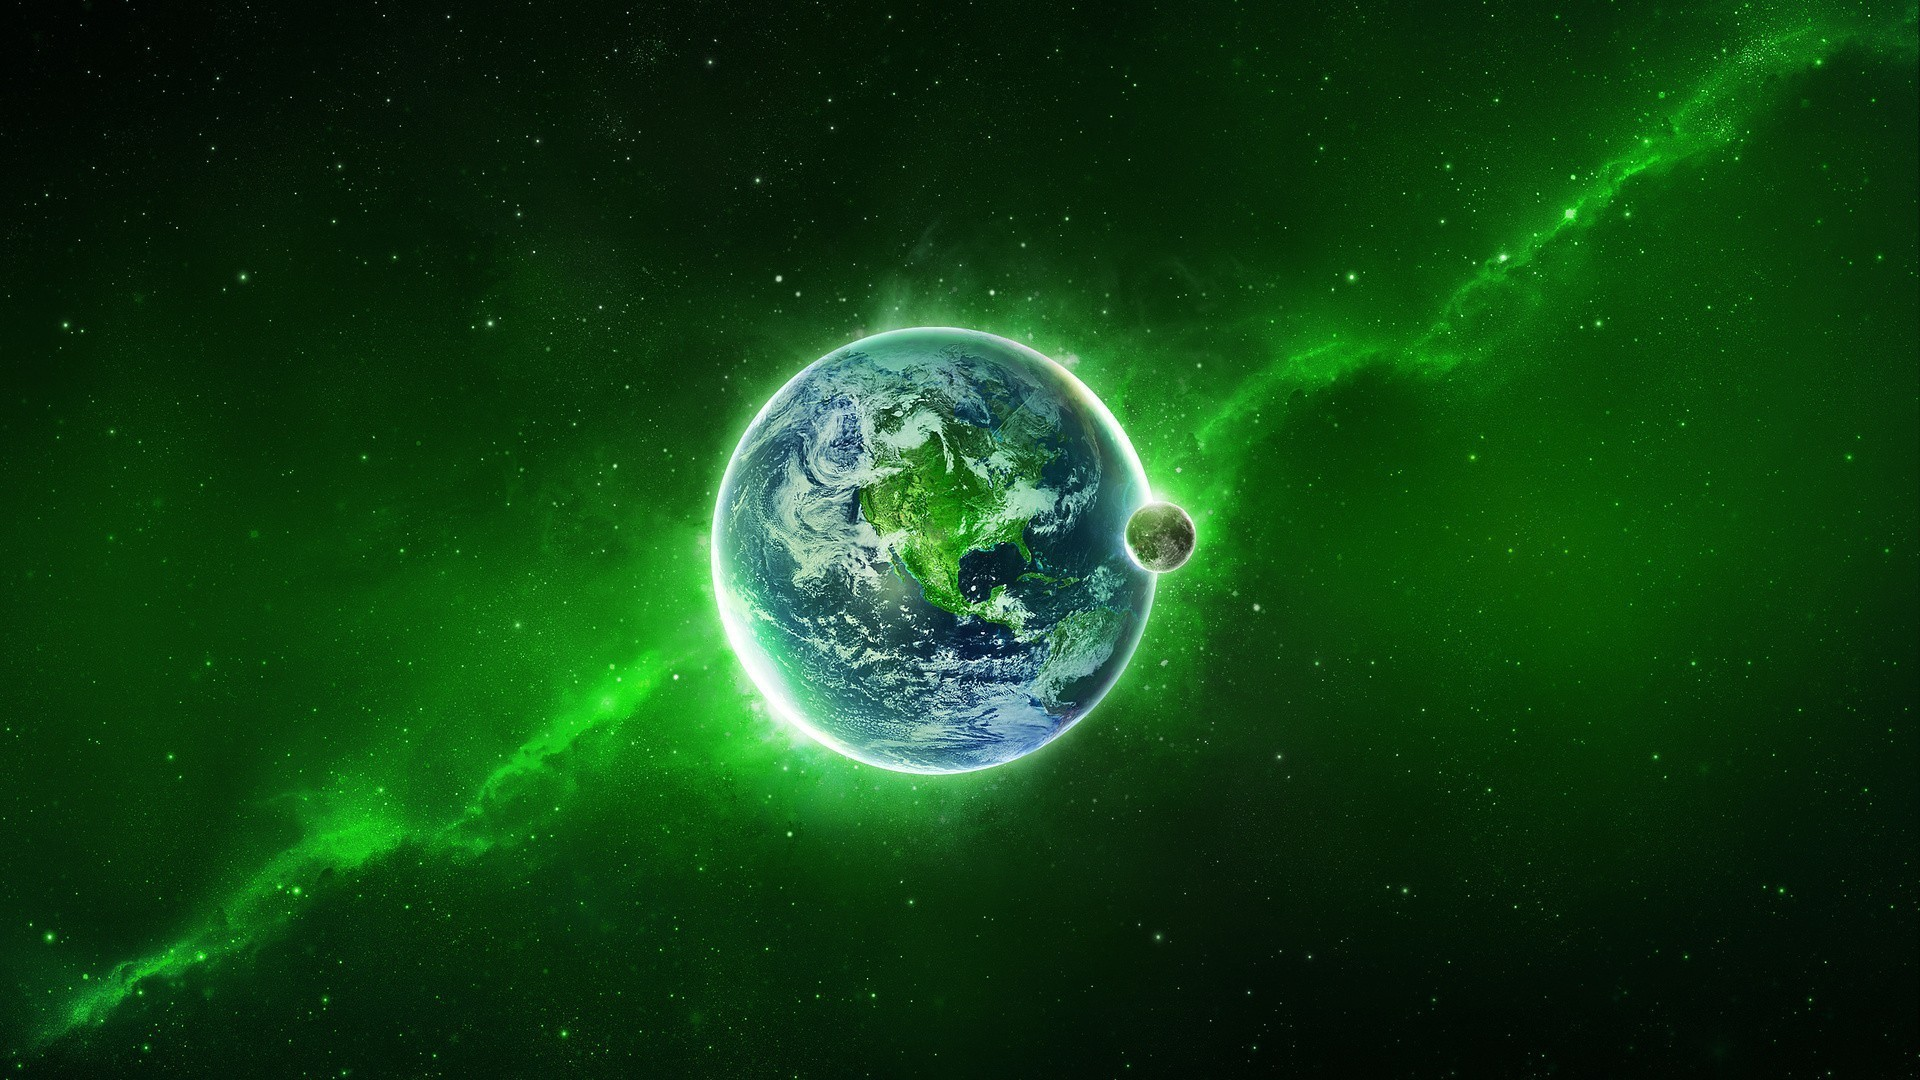 Our planet is on the background a green nebula